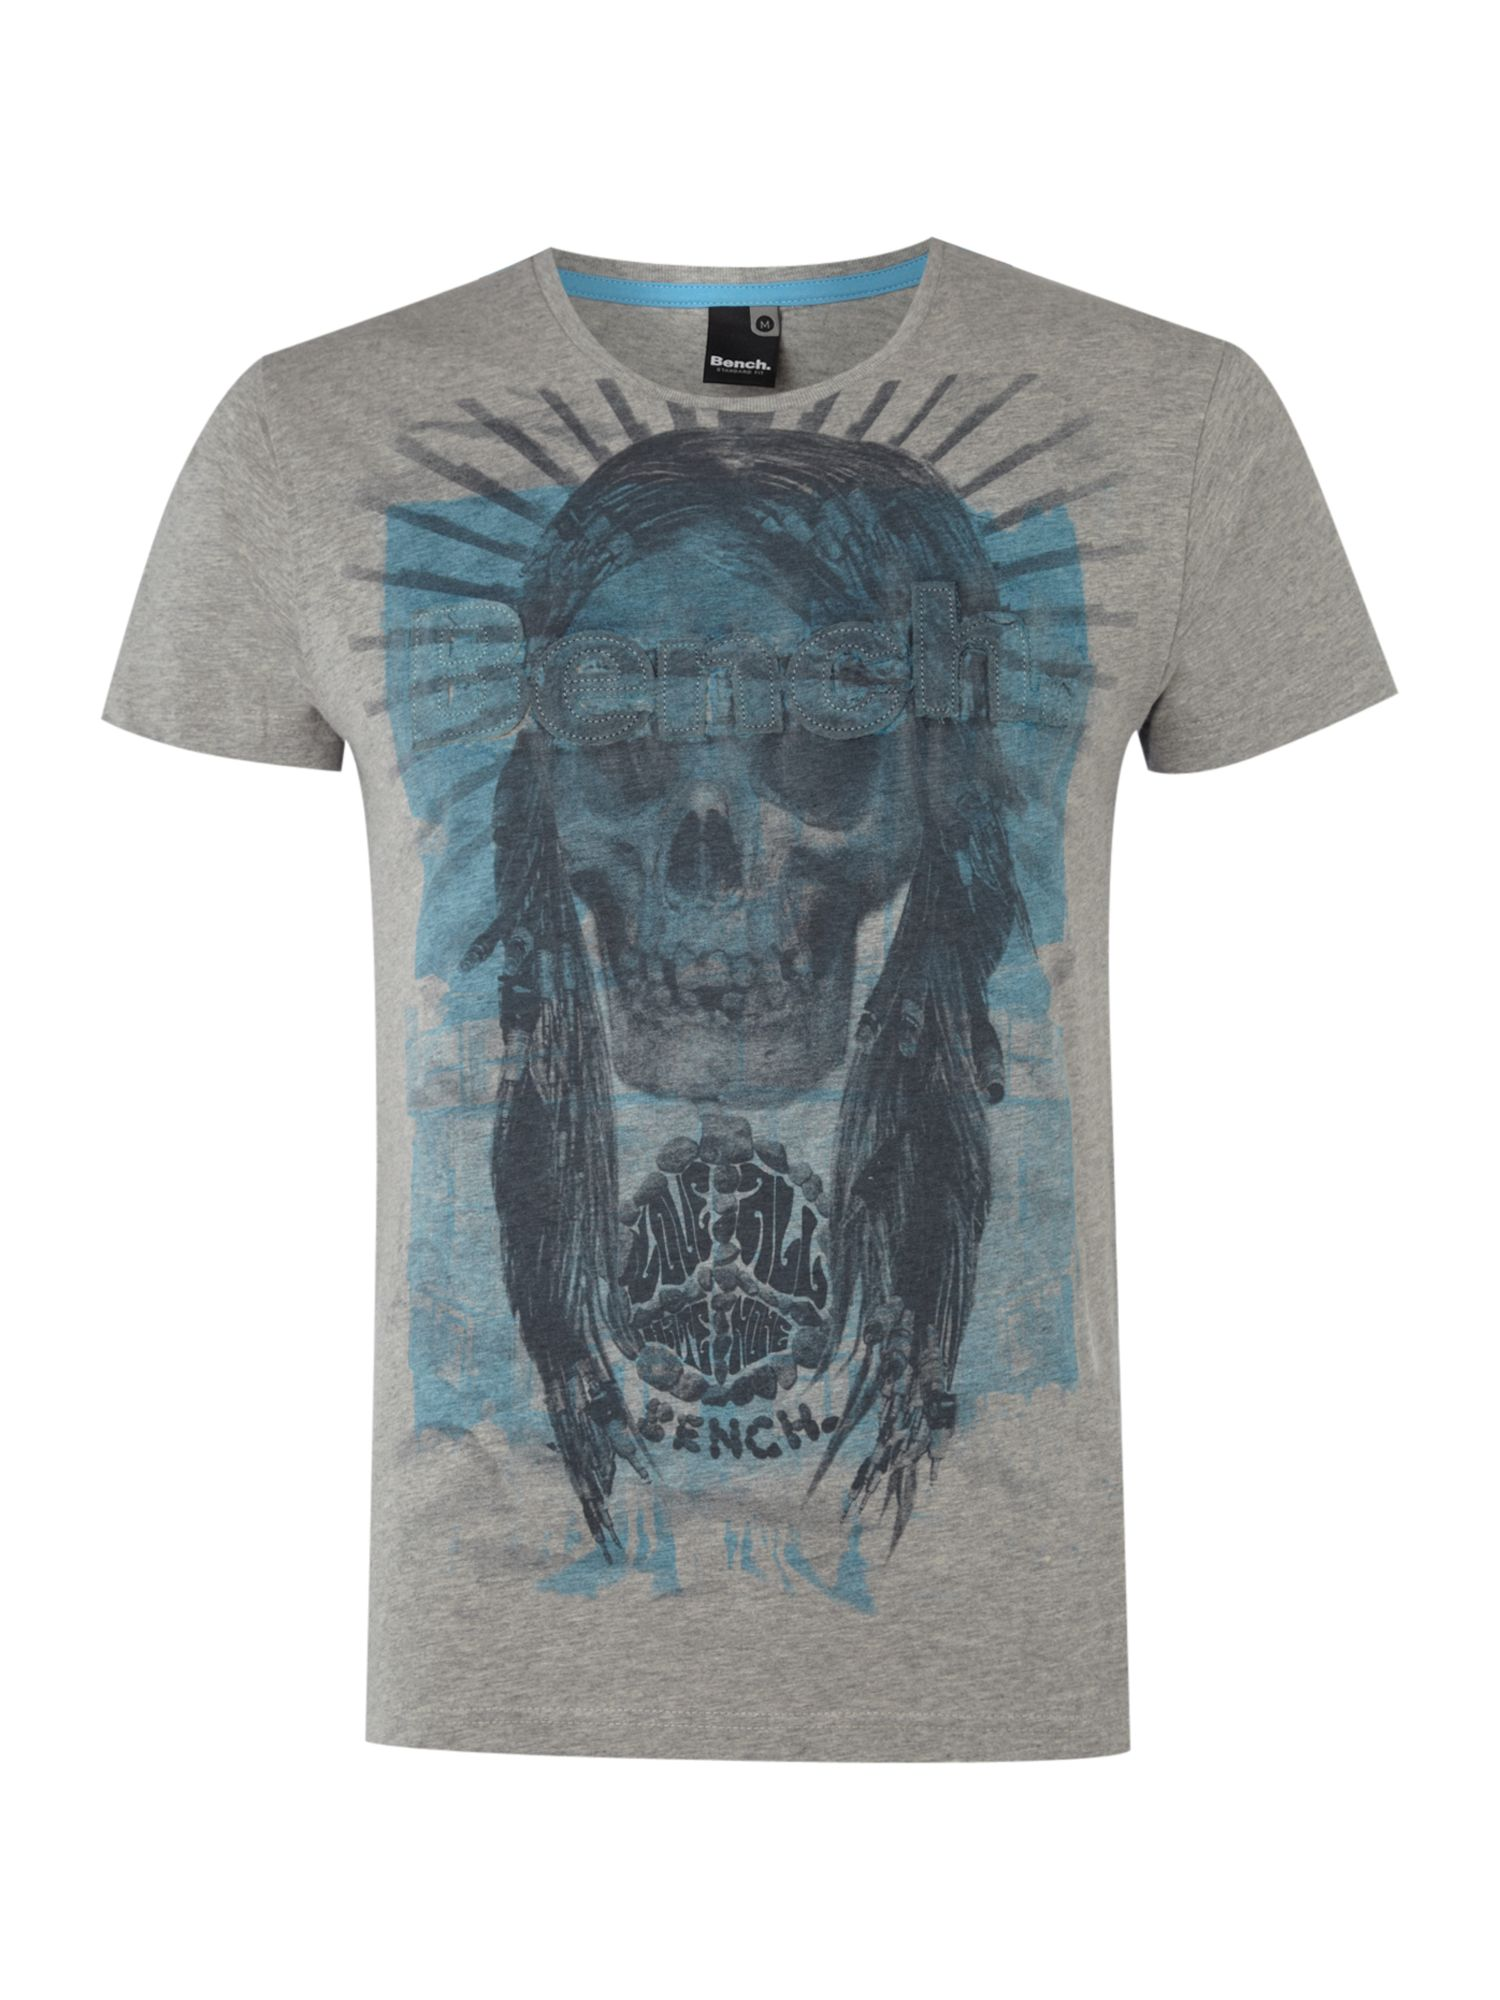 Mens Bench Skull print graphic T-shirt,